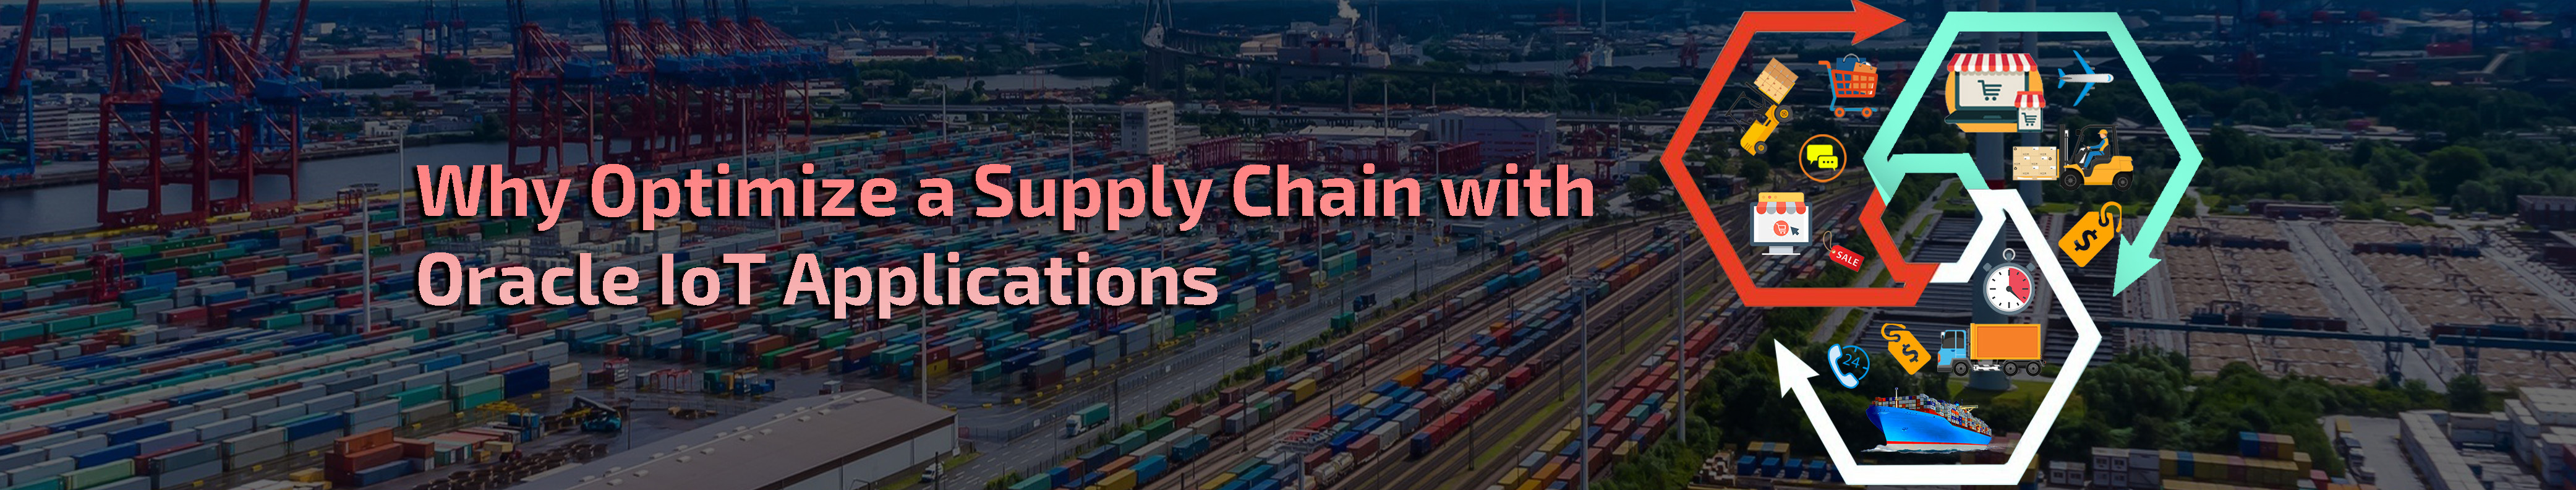 Why Optimize a Supply Chain with Oracle IoT Applications